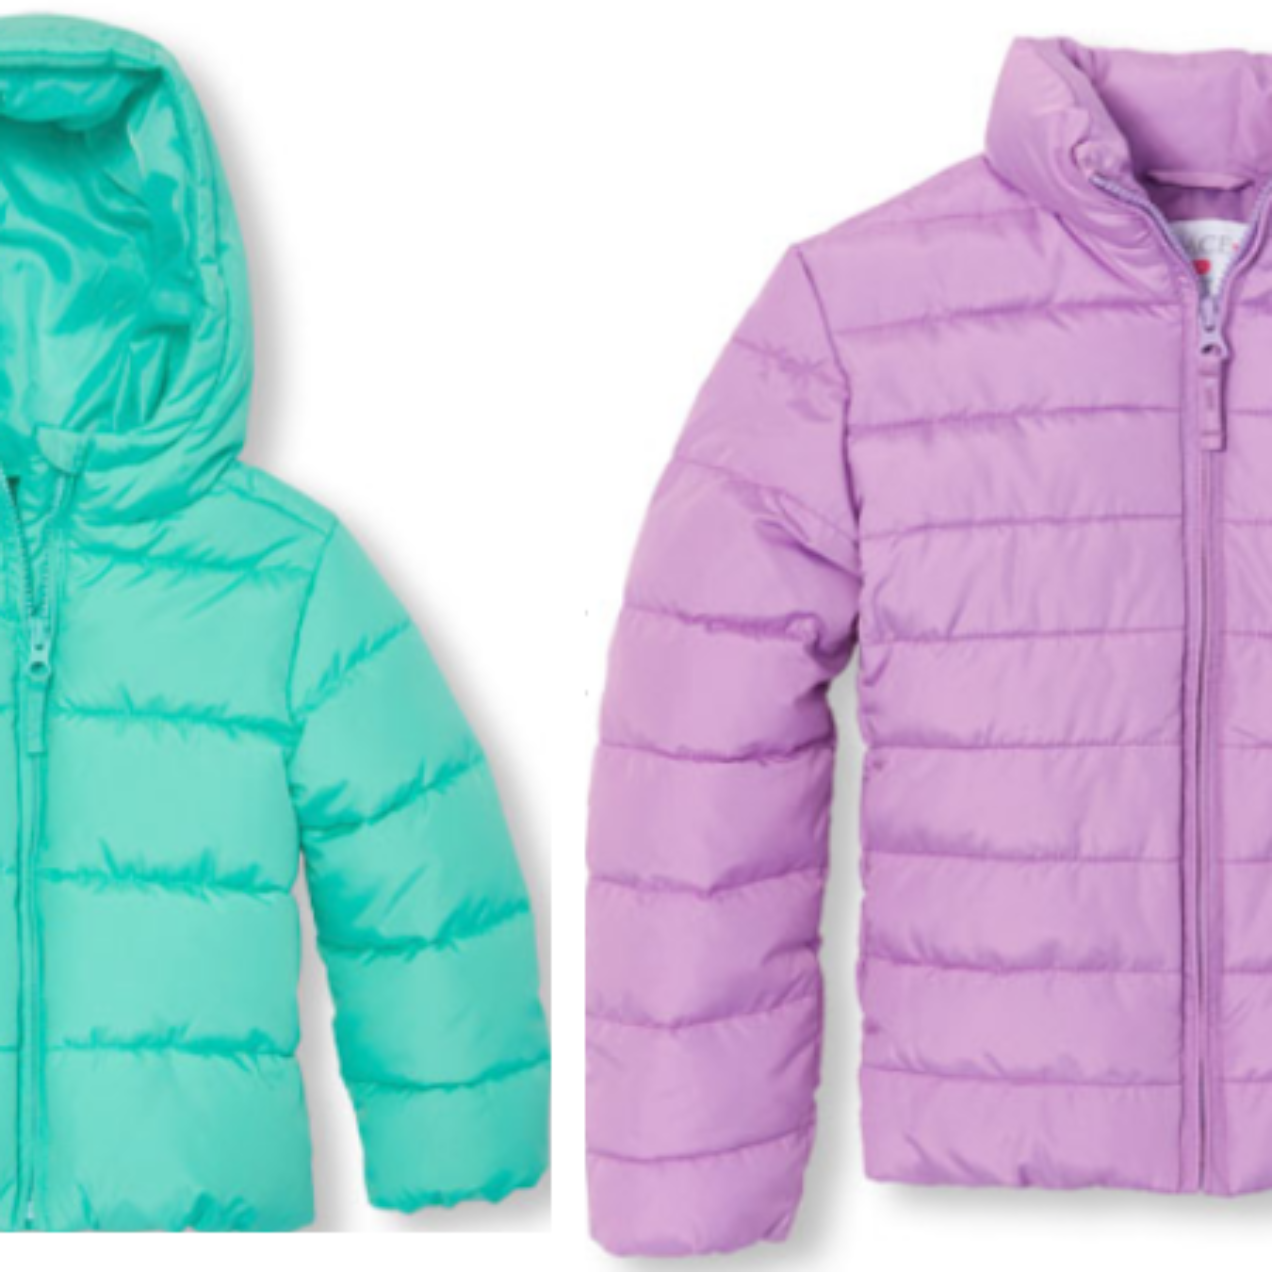 The Children's Place Puffer Jackets for Toddlers and Girls Only $9.99 Shipped (Regular $49.95)